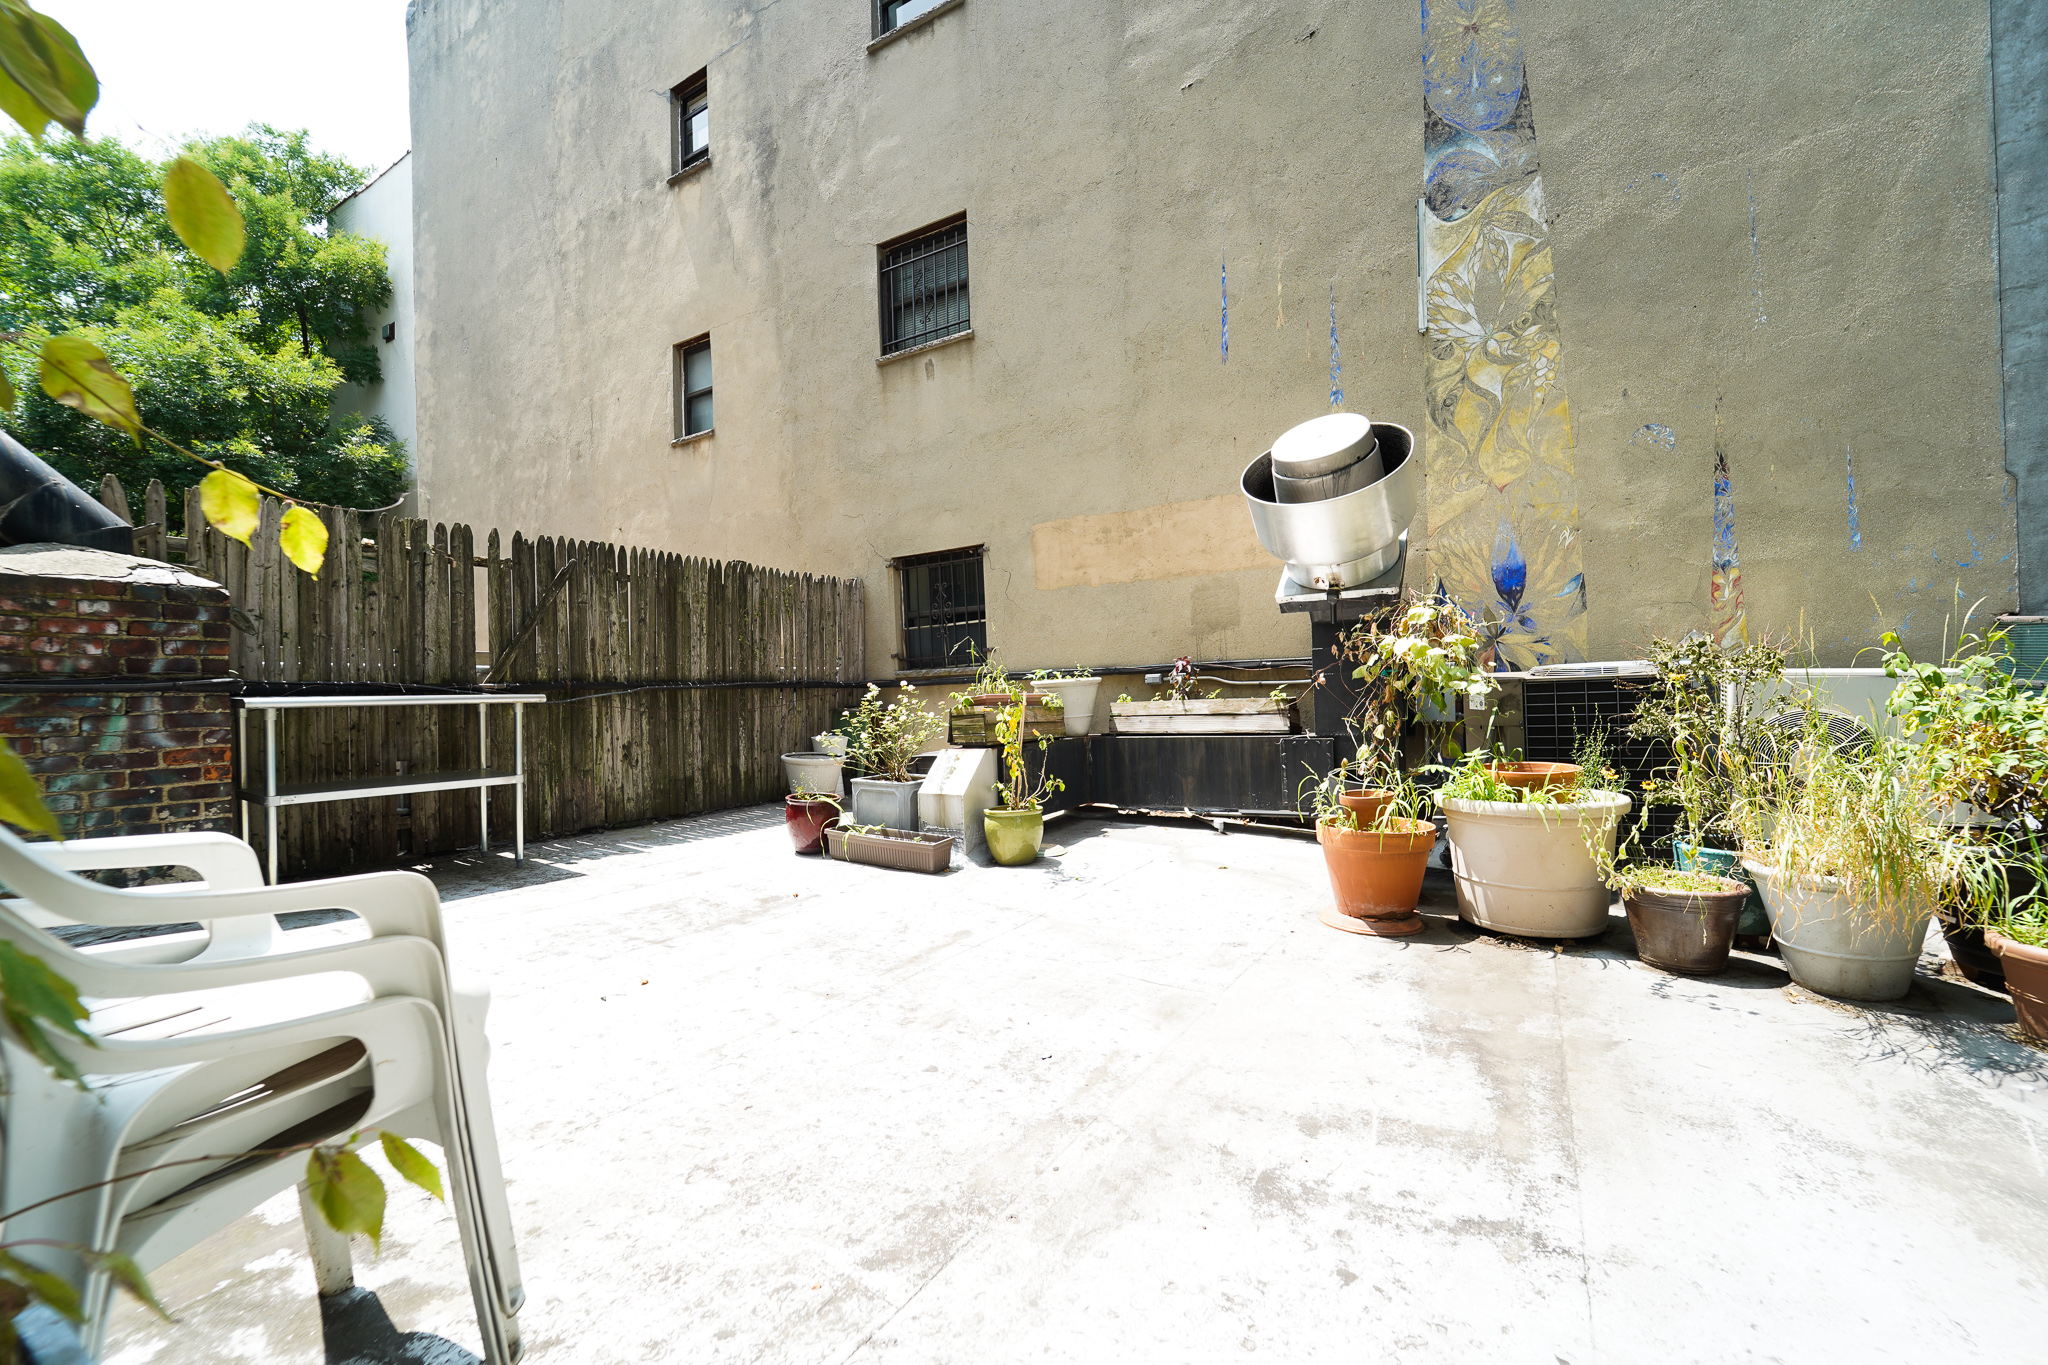 174 Ave B #2W - Super bright One bedroom in East Village! Enjoy the private outdoor deck, spacious living space with separate kitchen area, queen size bedroom and renovated bathroom. Located just one flight up in a walk up building! Rent: $3,195 /monthTerms: 12 - 12 MonthsAvailable: Immediate